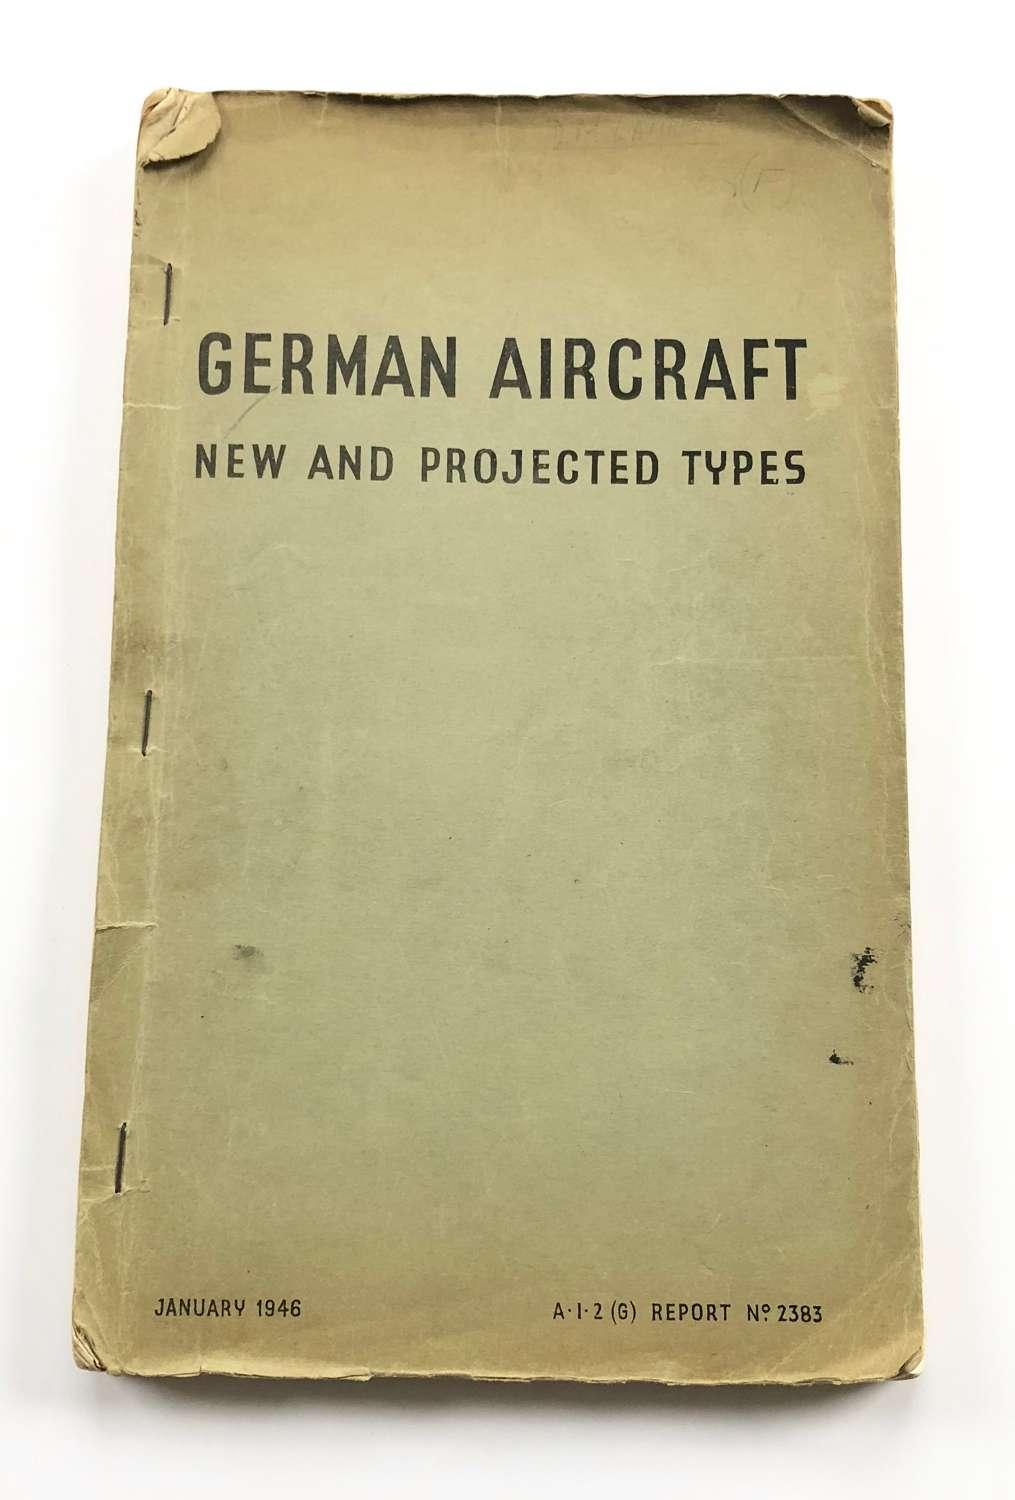 WW2 RAF German Aircraft New and Projected Types 1946.